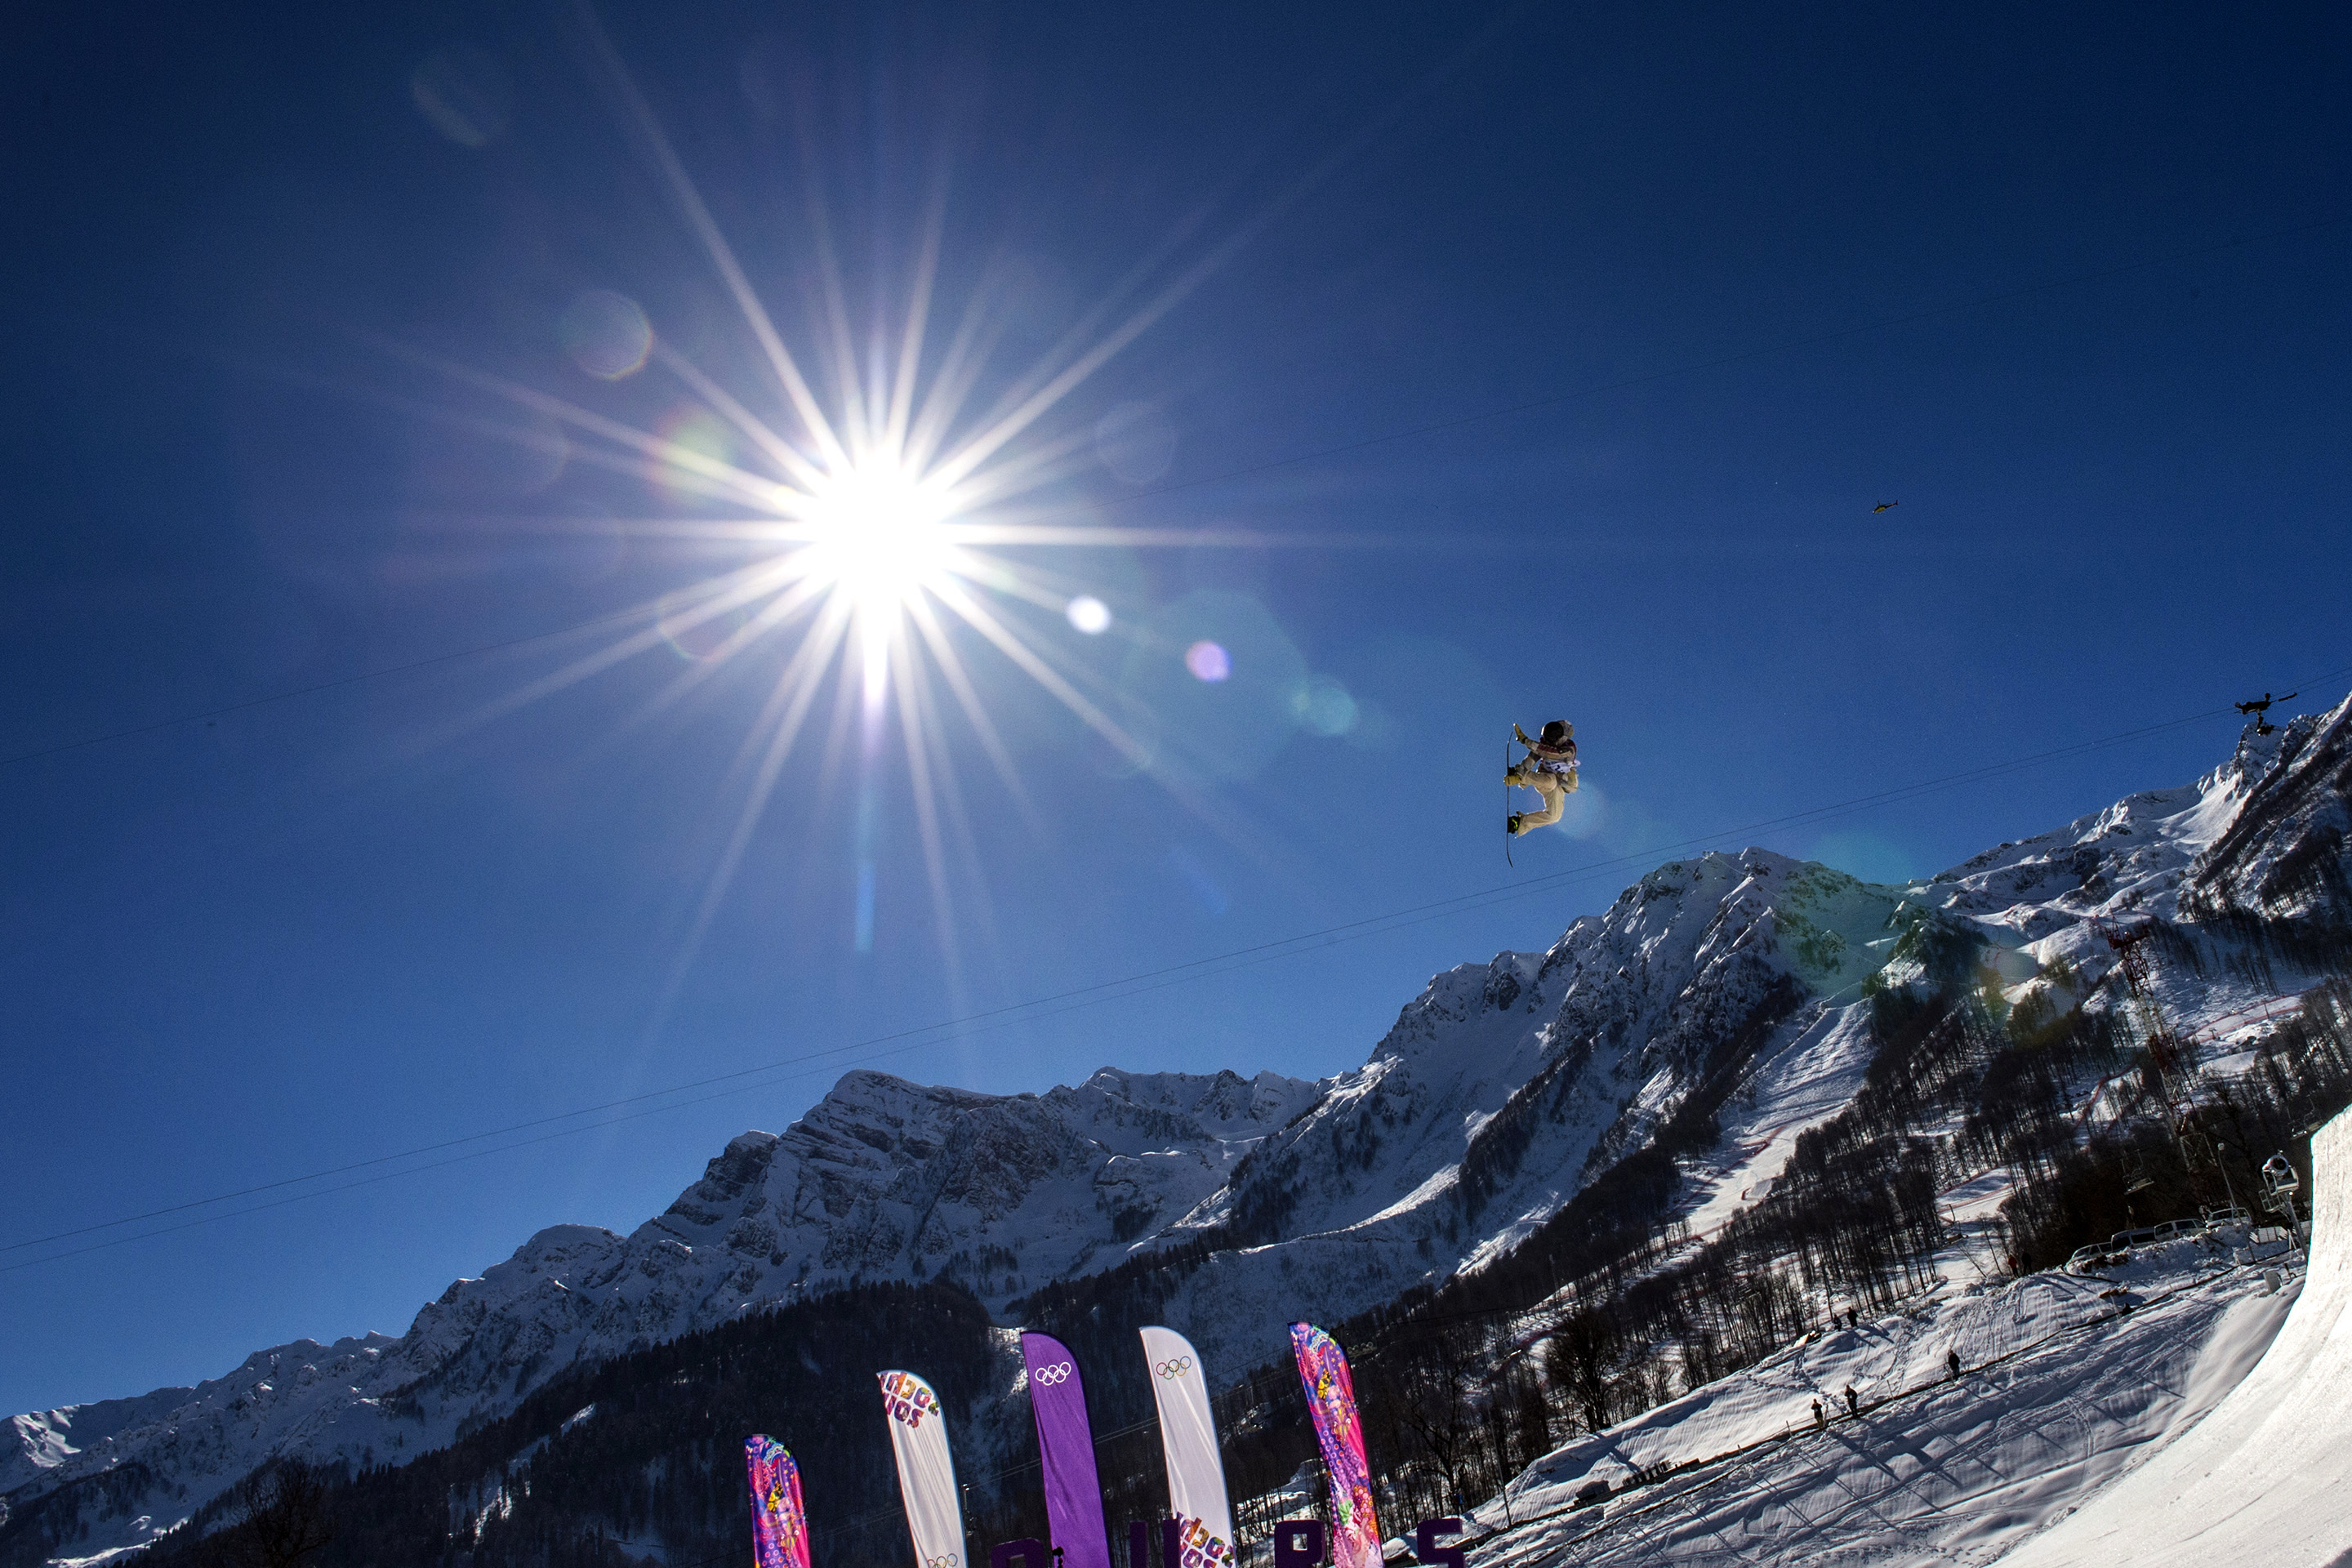 Sage Kotsenburg, of Park City, competes in the men's slopestyle finals at the Rosa Khutor Extreme Park during the 2014 Sochi Olympic Games. Kotsenburg won the gold medal with a score of 93.50.  (Photo by Chris Detrick/The Salt Lake Tribune)